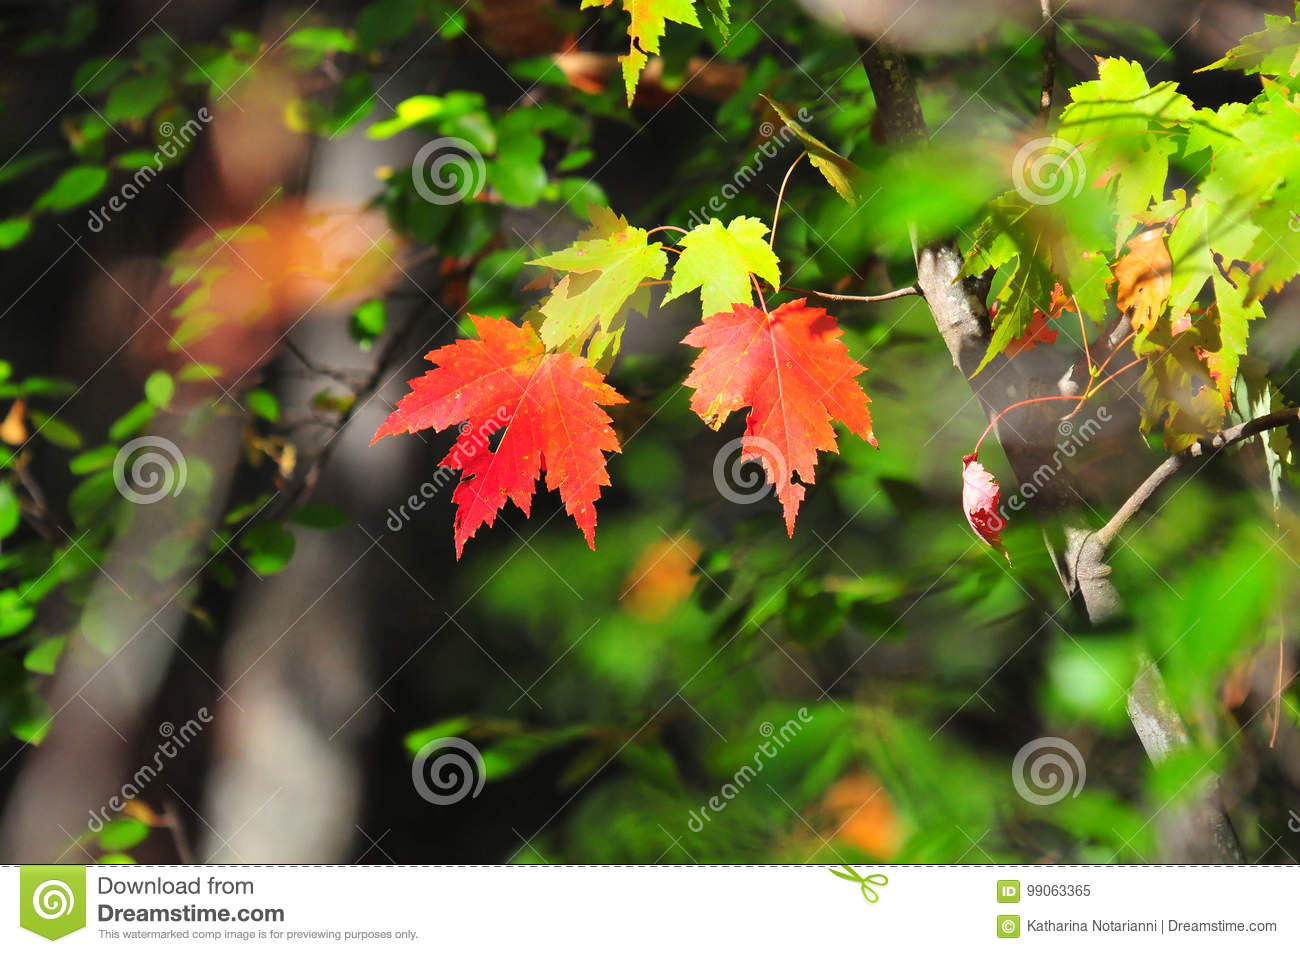 Fall Foliage Autumn Maple Leaves Close Up Background Stock Image ...